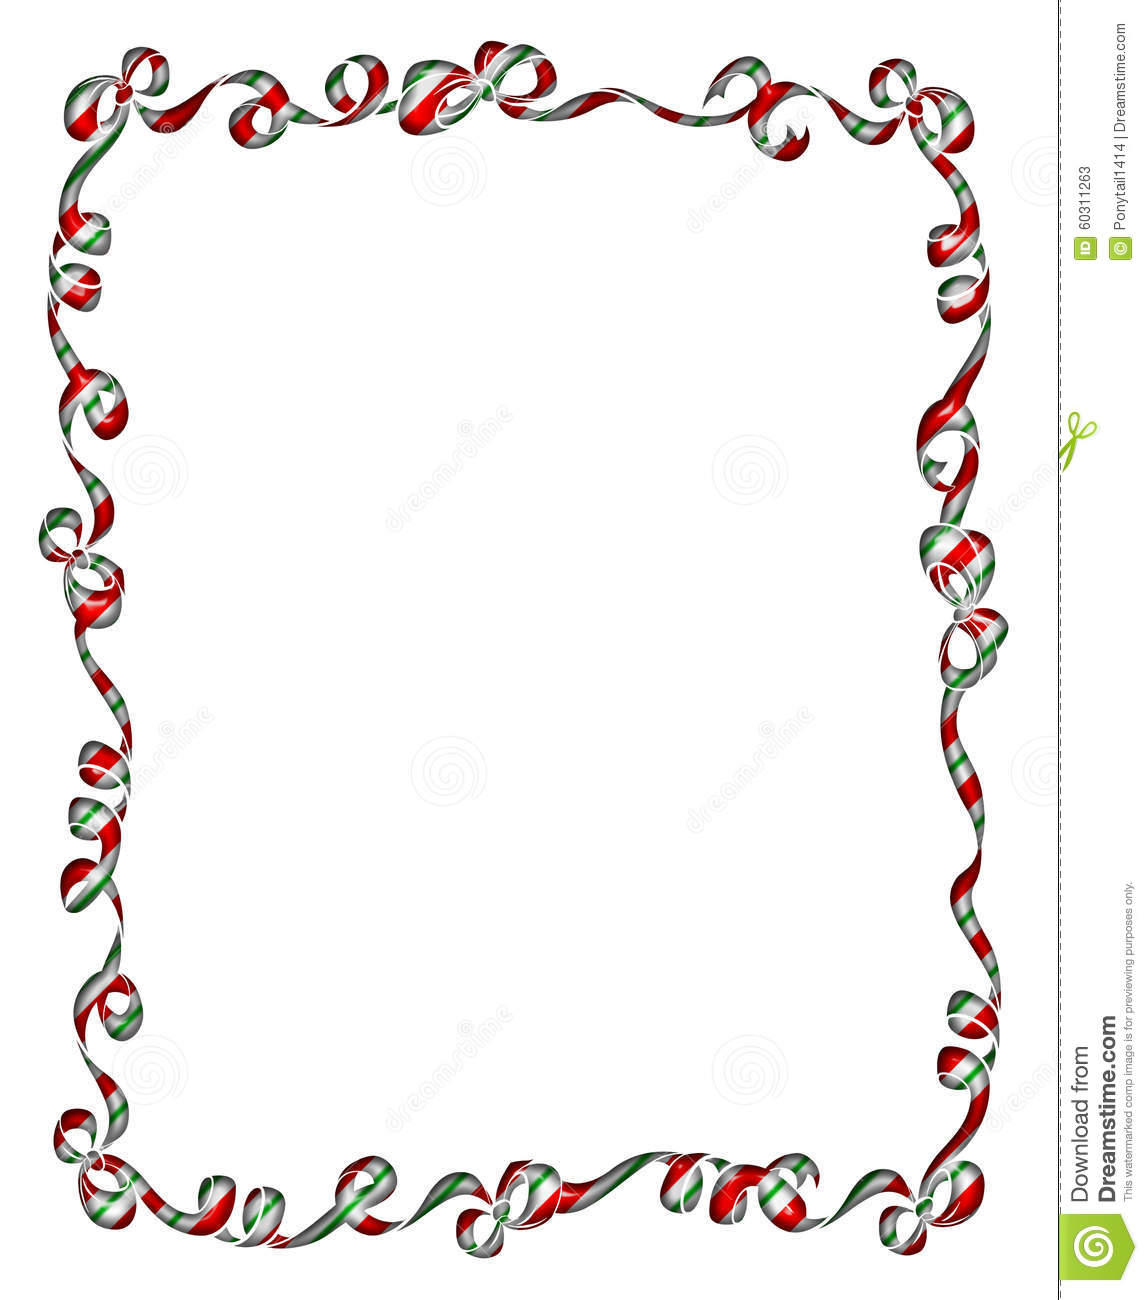 Frame of christmas ribbons and bows stock illustration